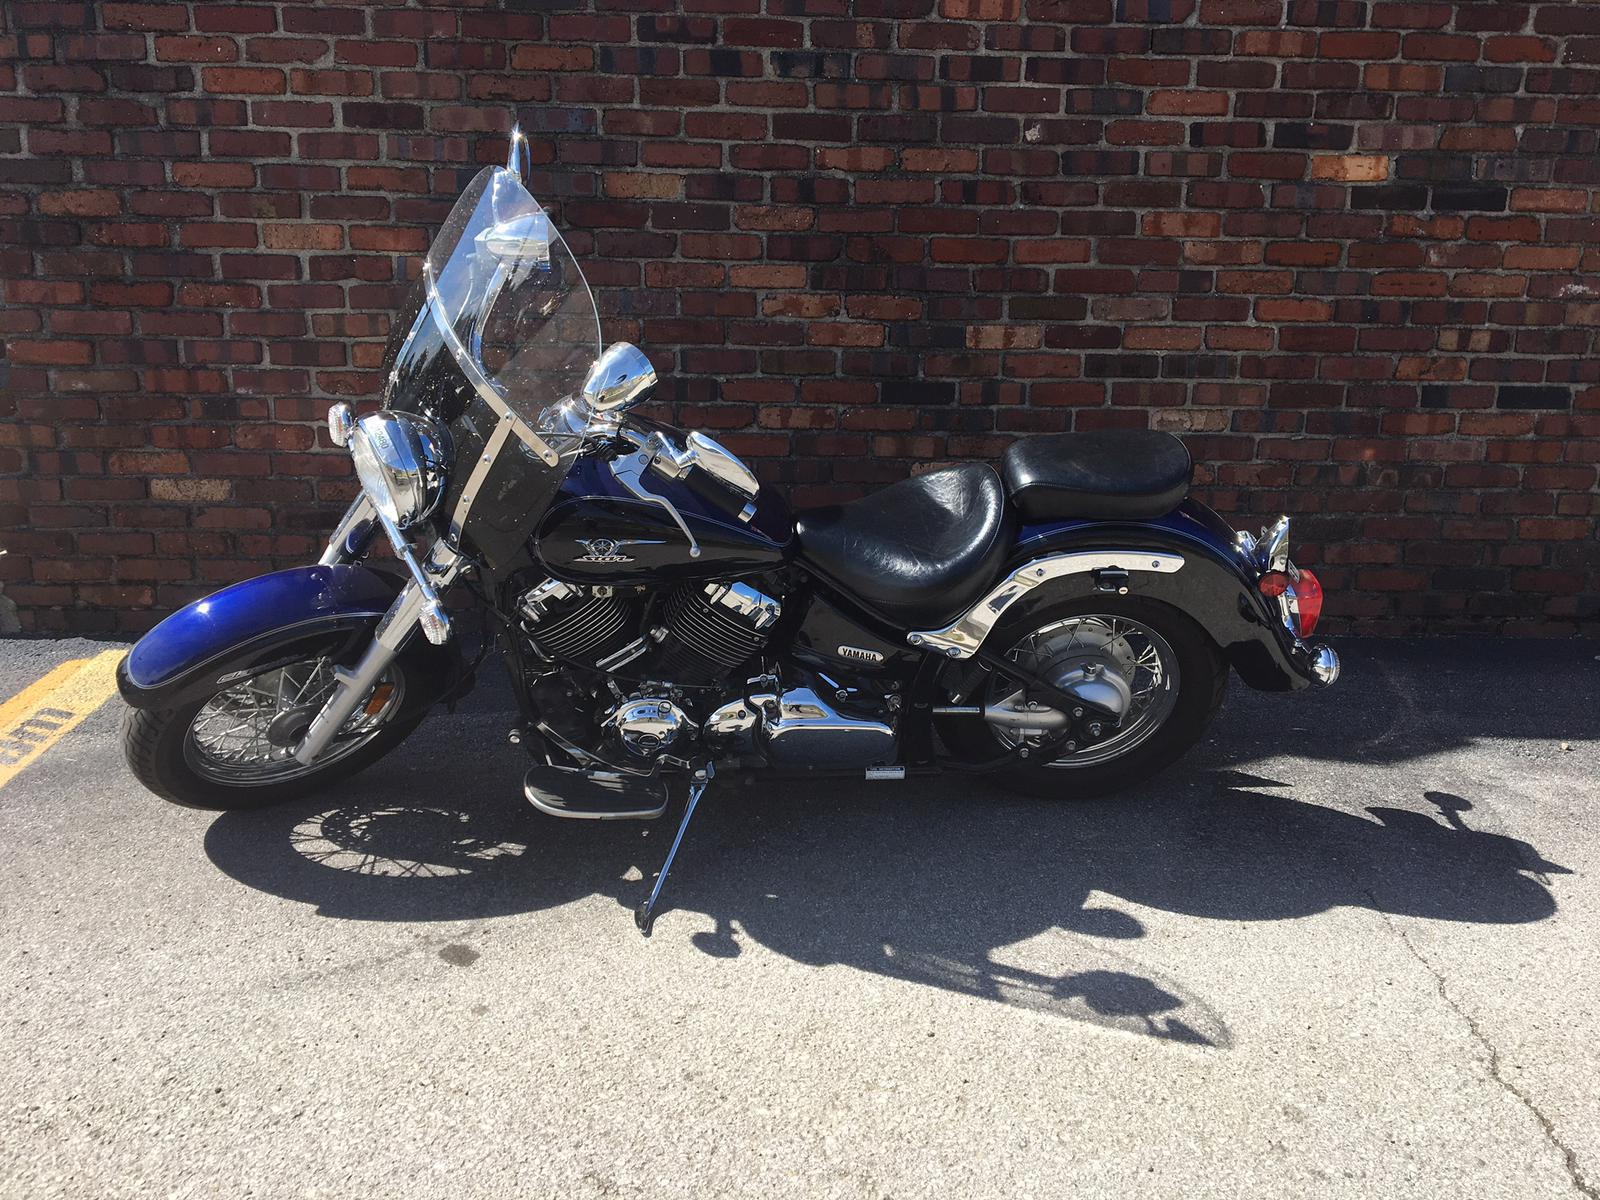 2006 Yamaha V Star Classic 650 For Sale In Indianapolis Dreyer Motorcycle Used On Spyder Headlight Wiring Honda 317 248 1403